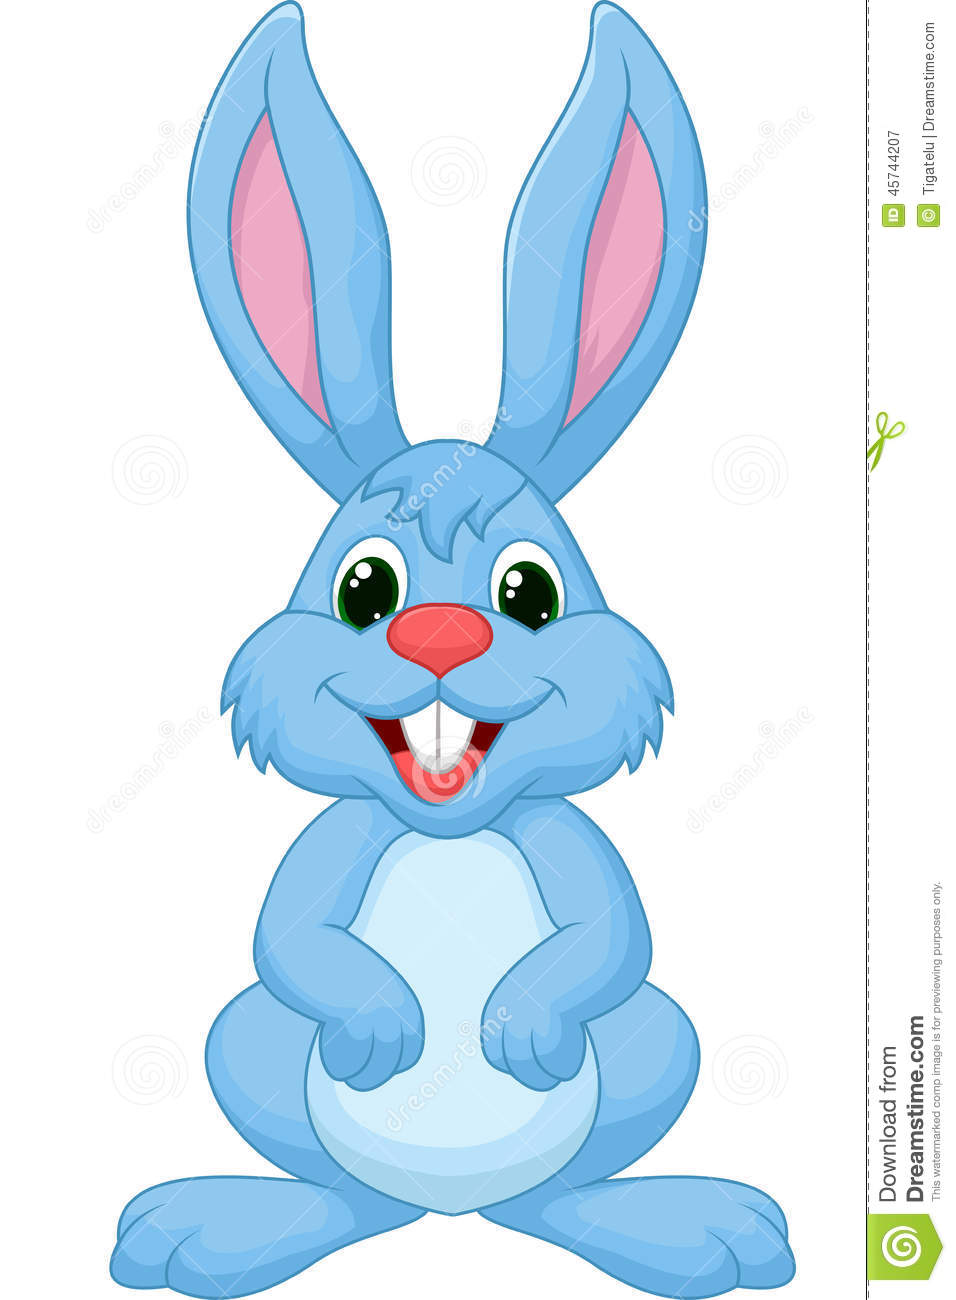 Cute rabbit cartoon stock vector. Illustration of ...